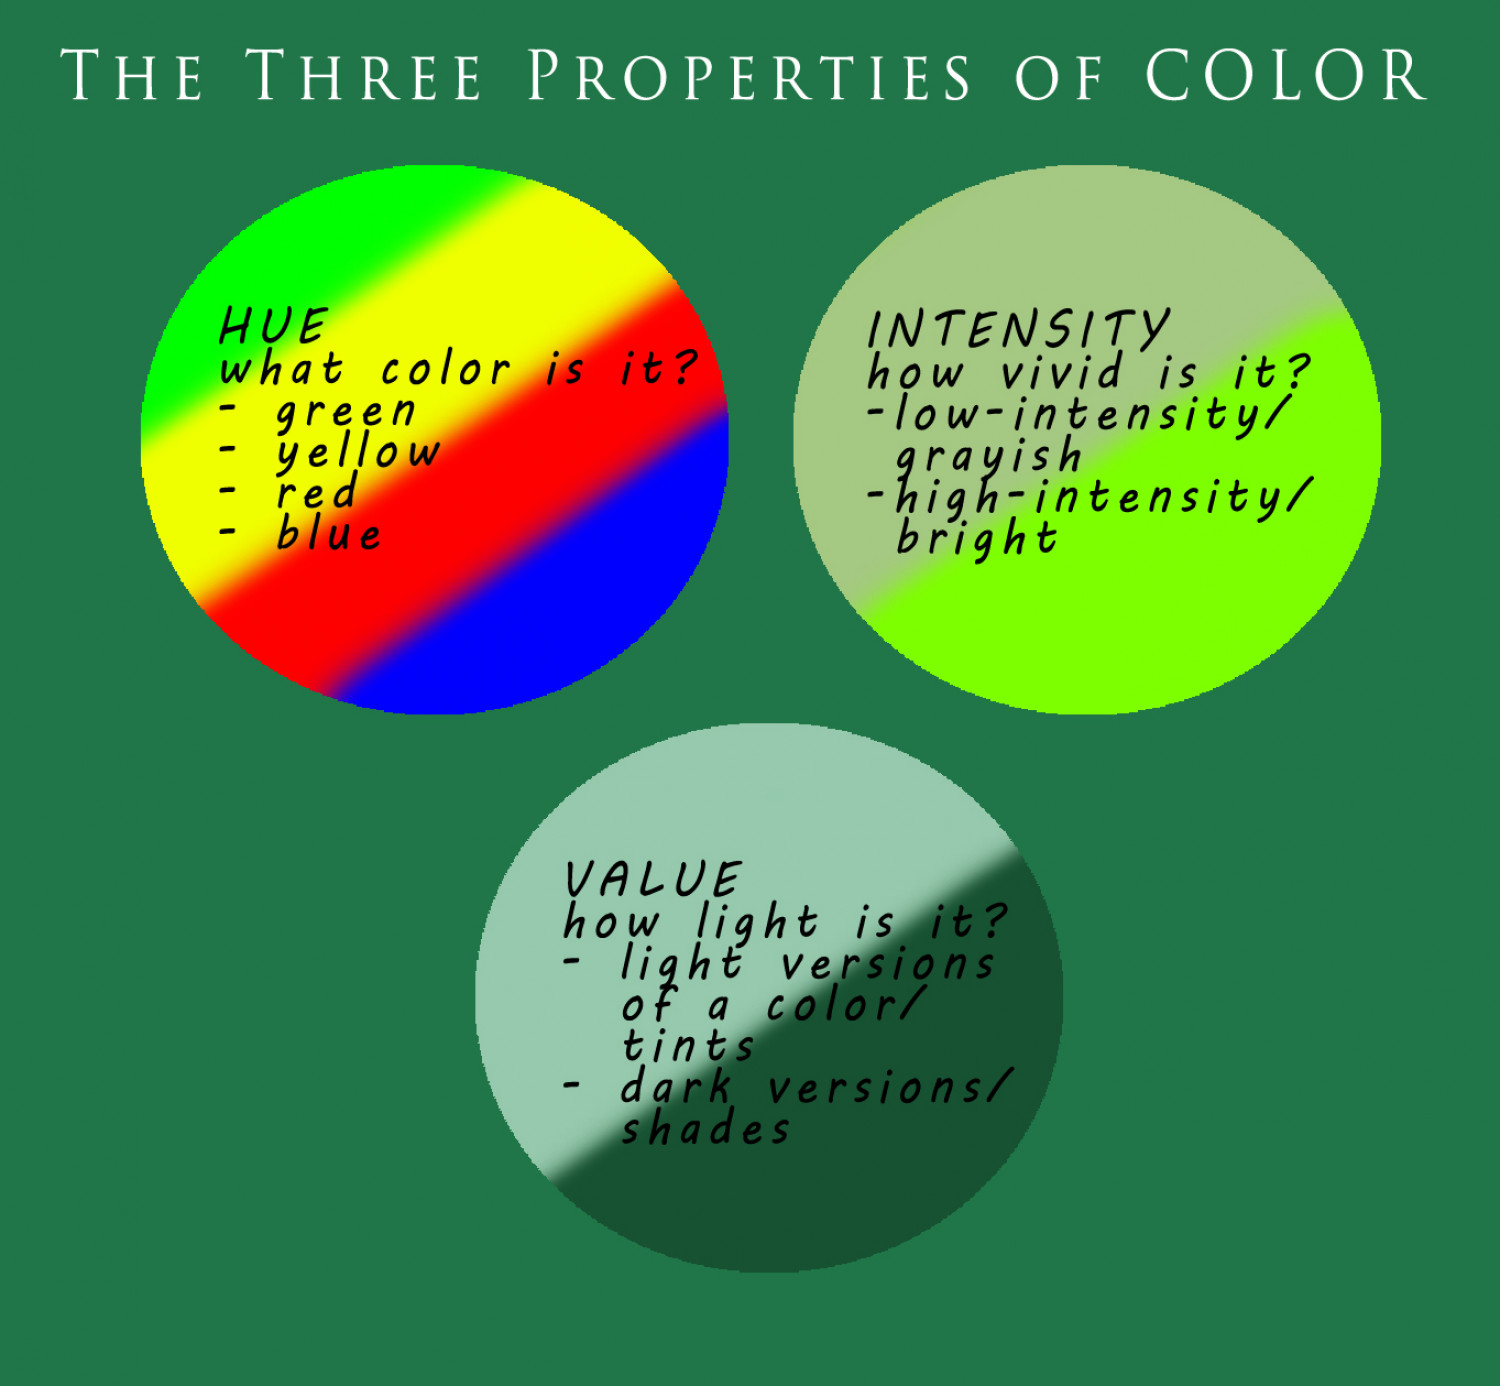 The Three Properties of Color Infographic